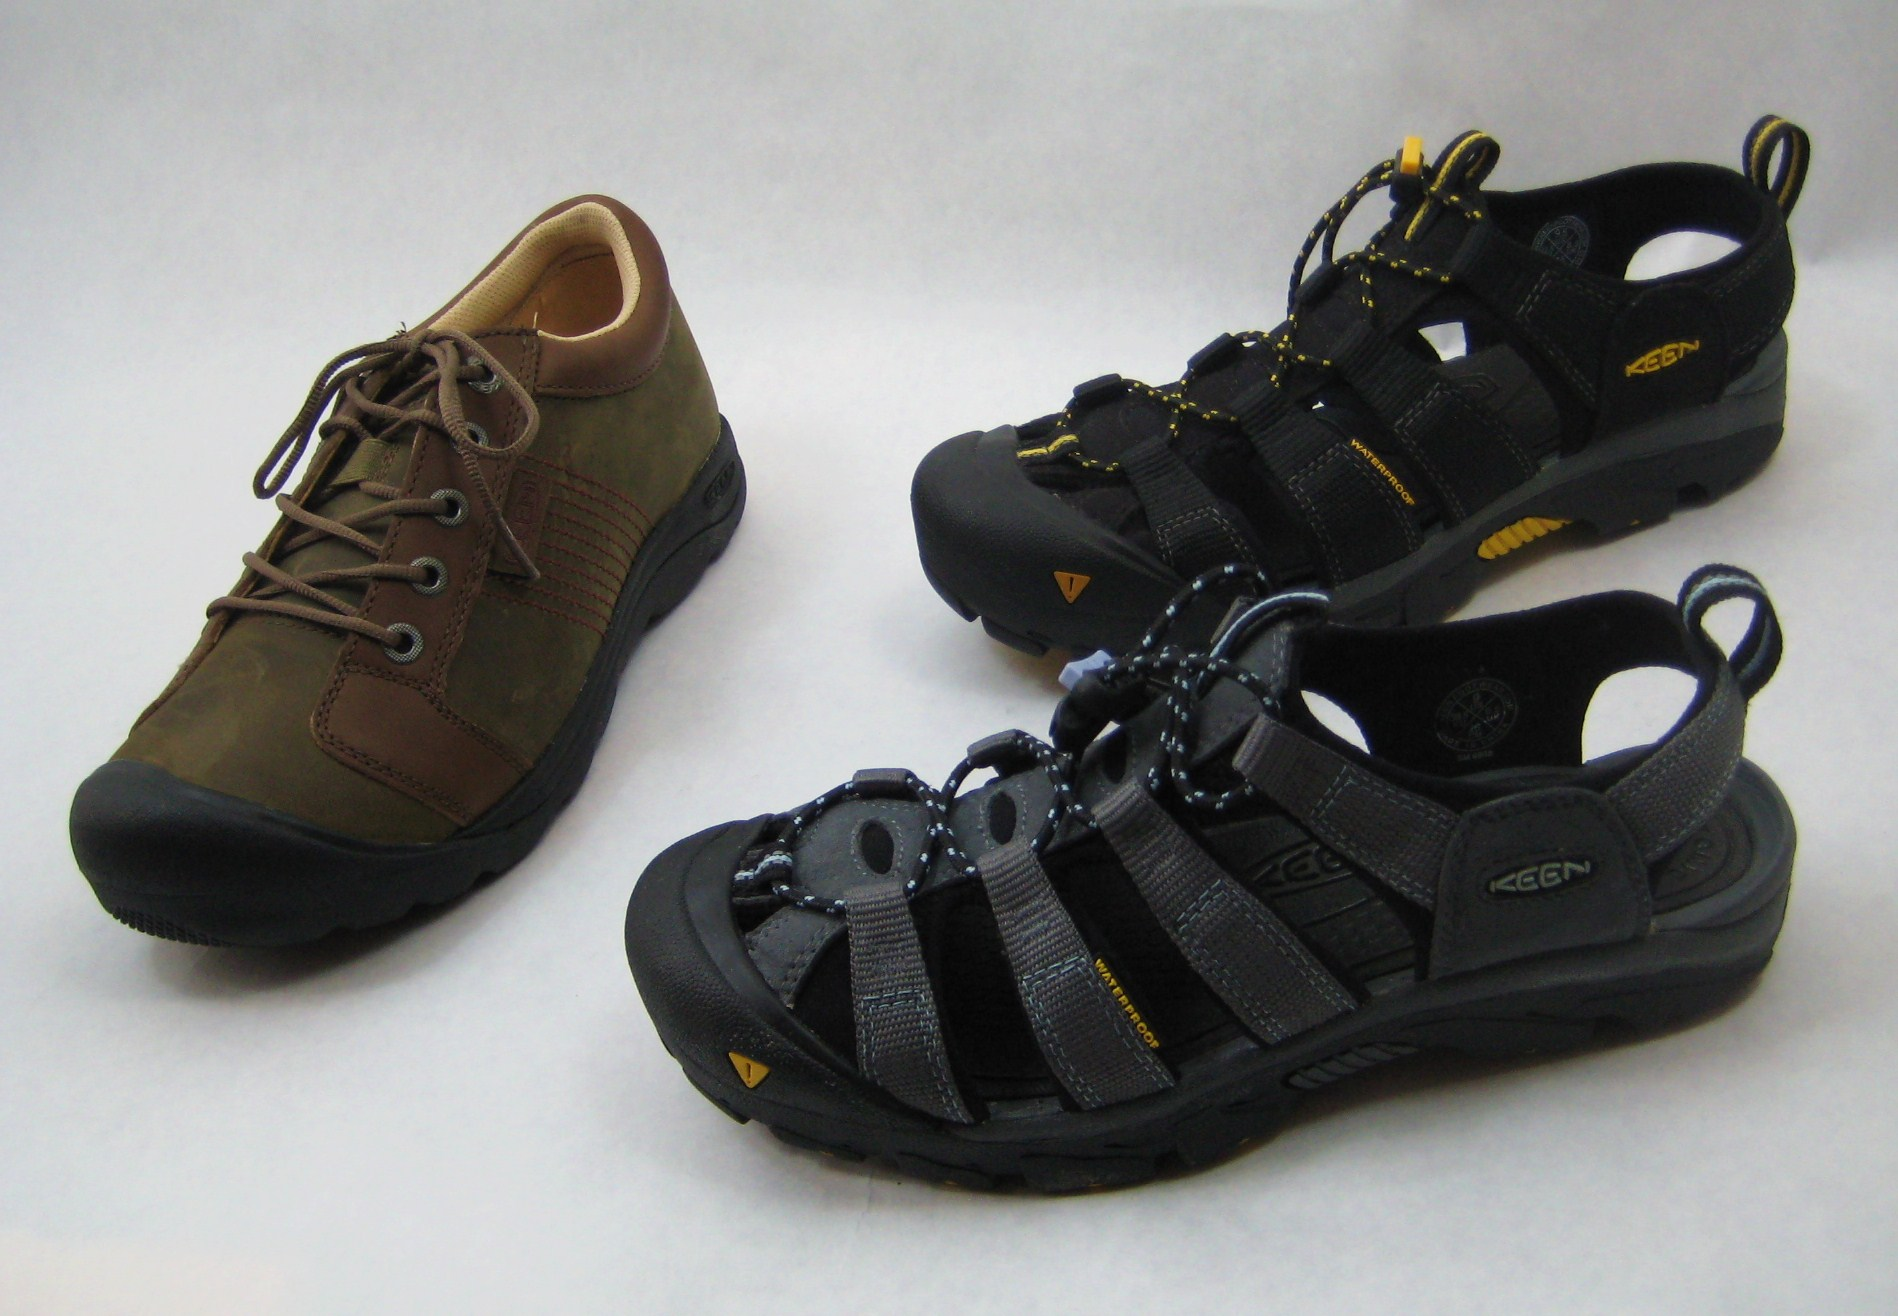 Keen cycling shoes for recessed cleats